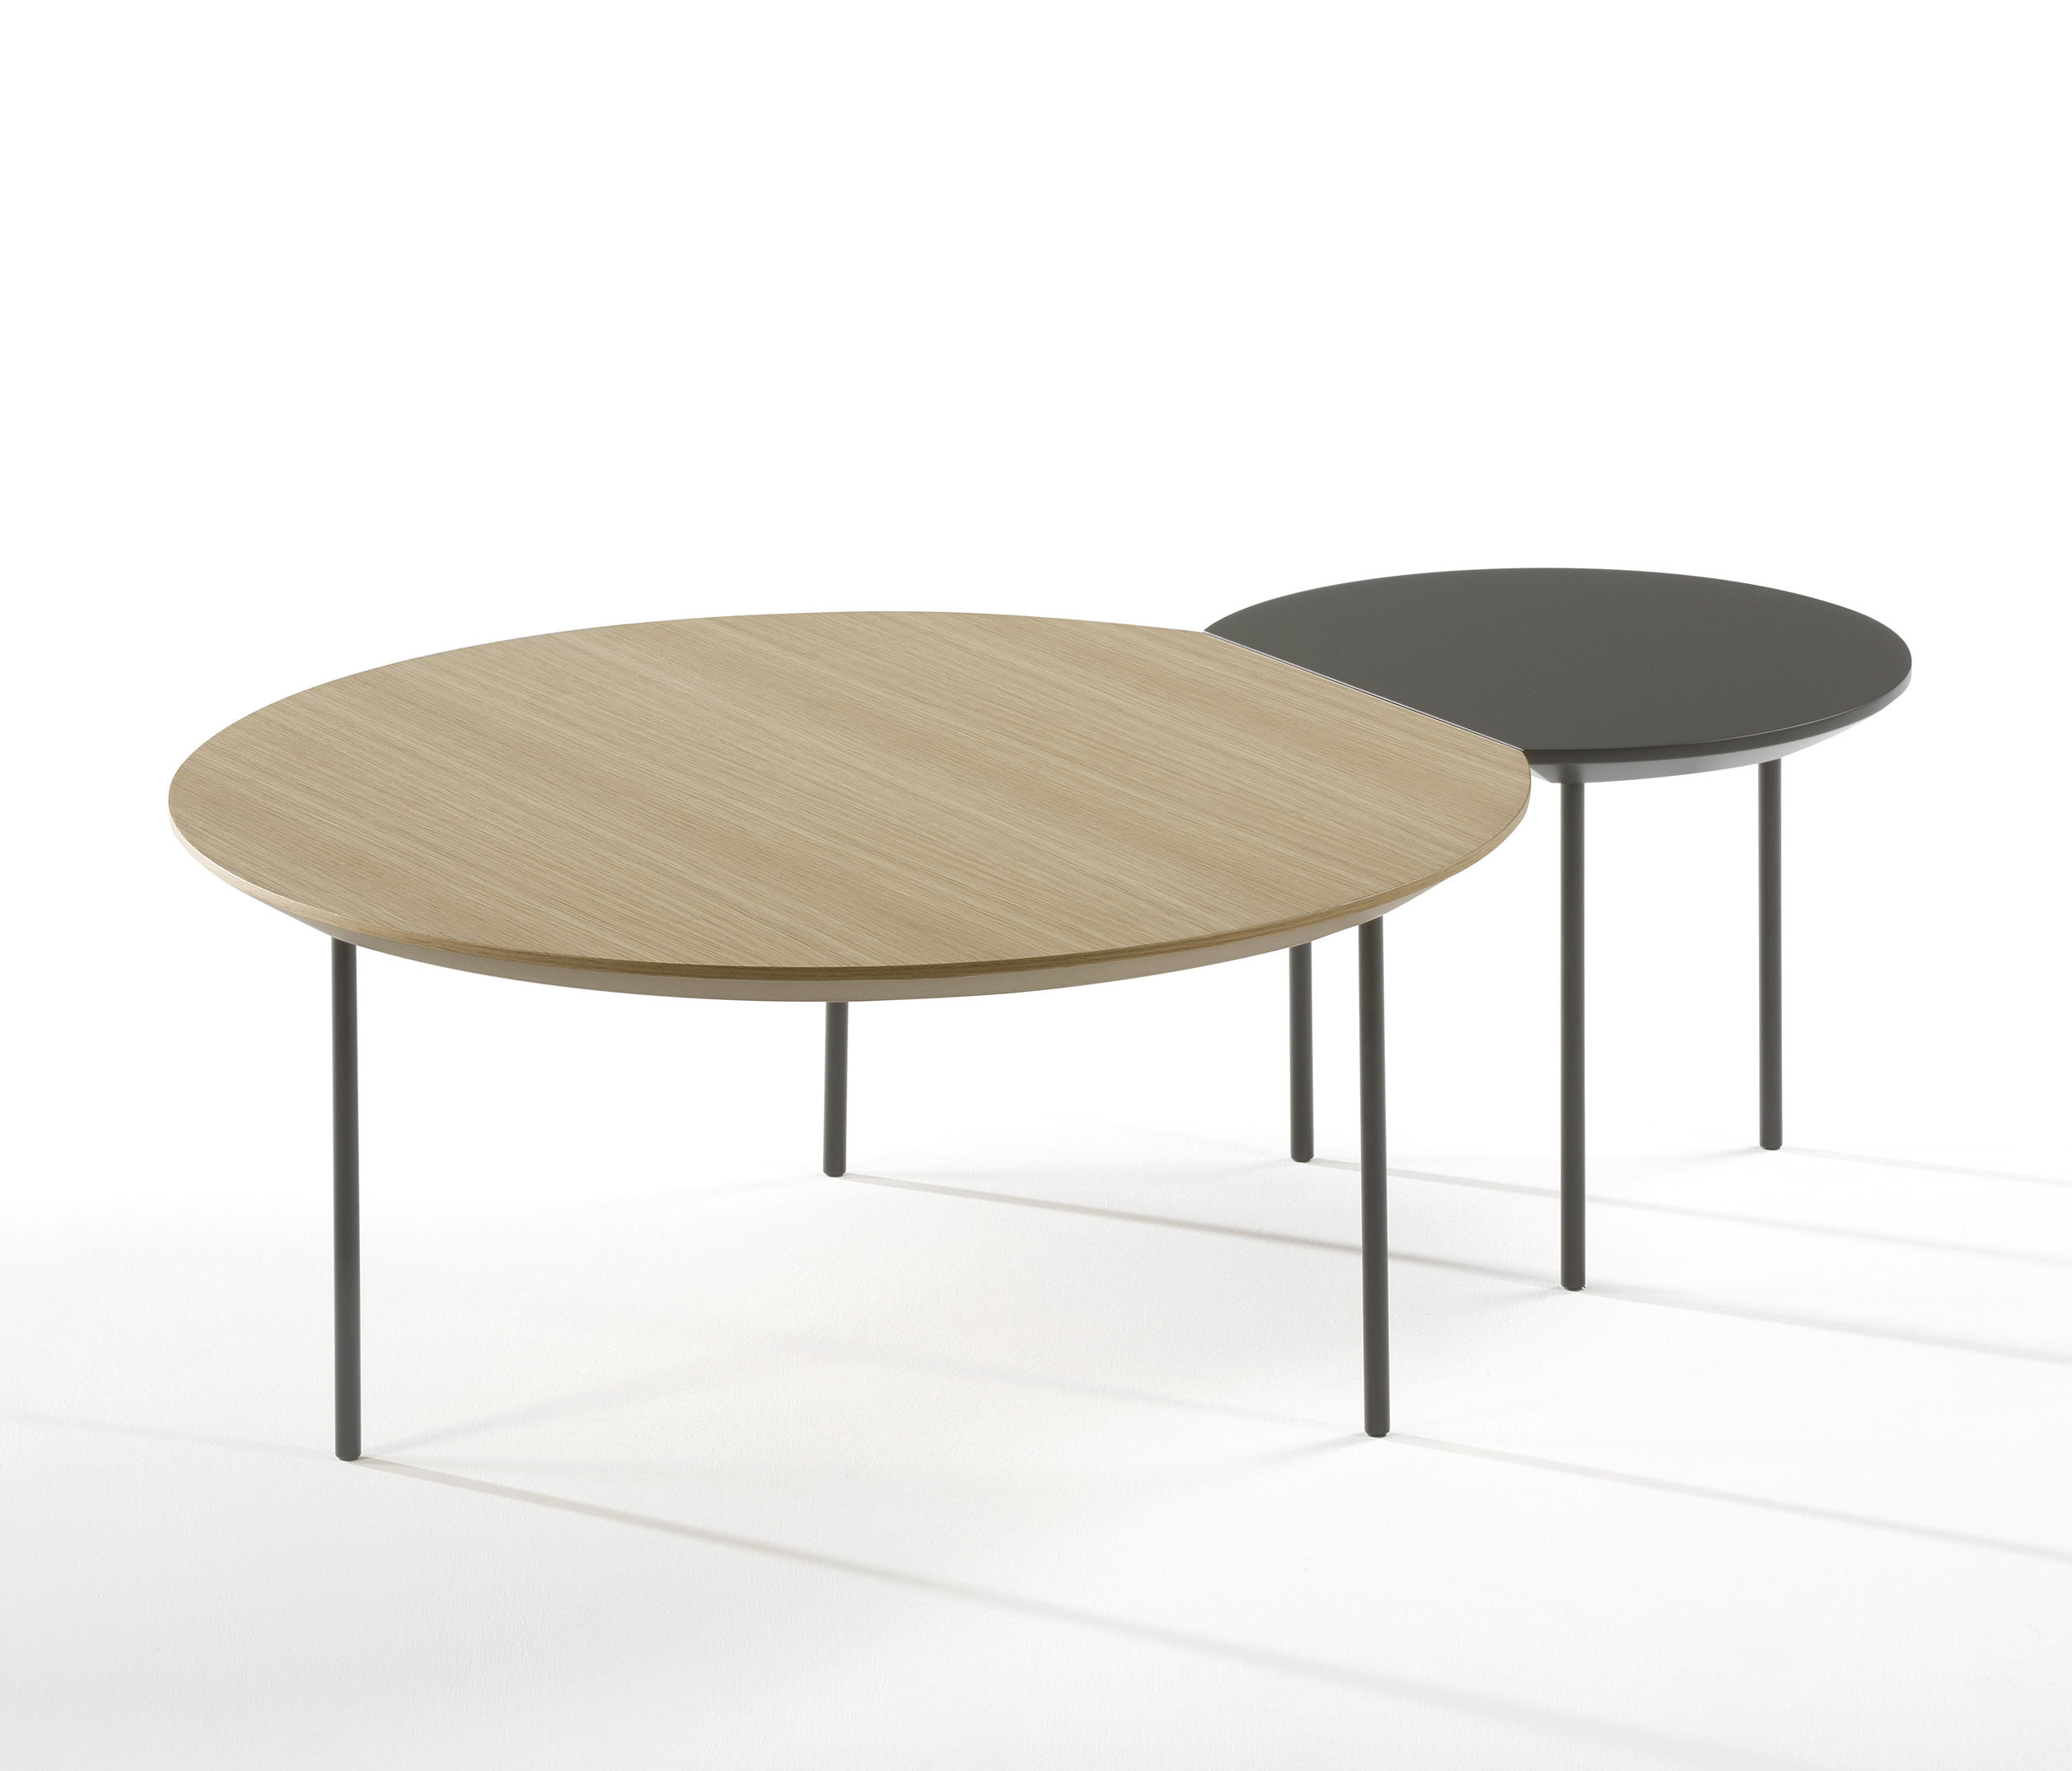 Cort coffee table side tables from kendo mobiliario - Kendo mobiliario ...